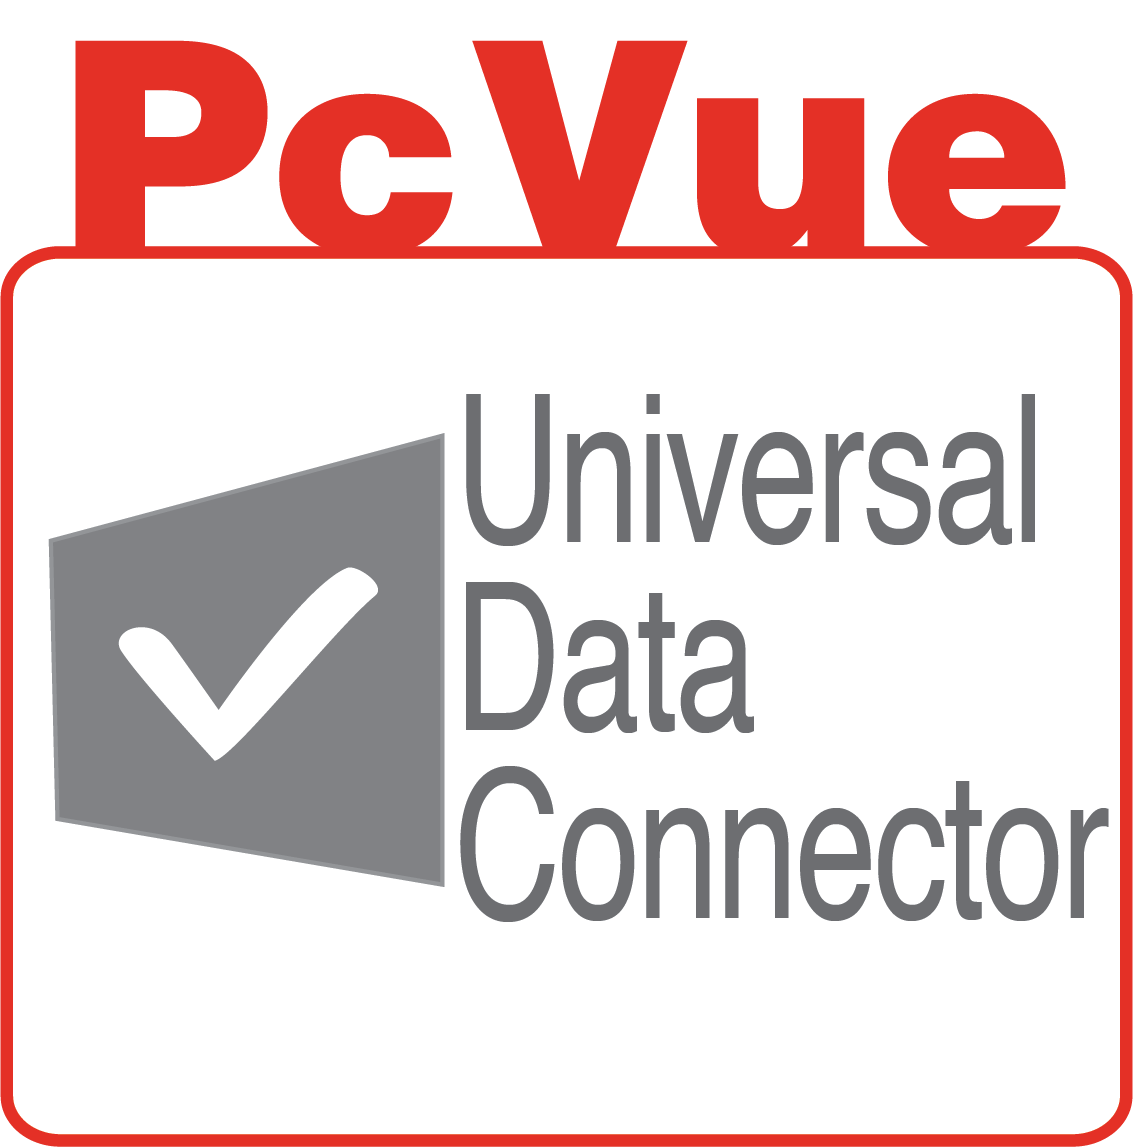 PcVue icon features Universal Data Connector